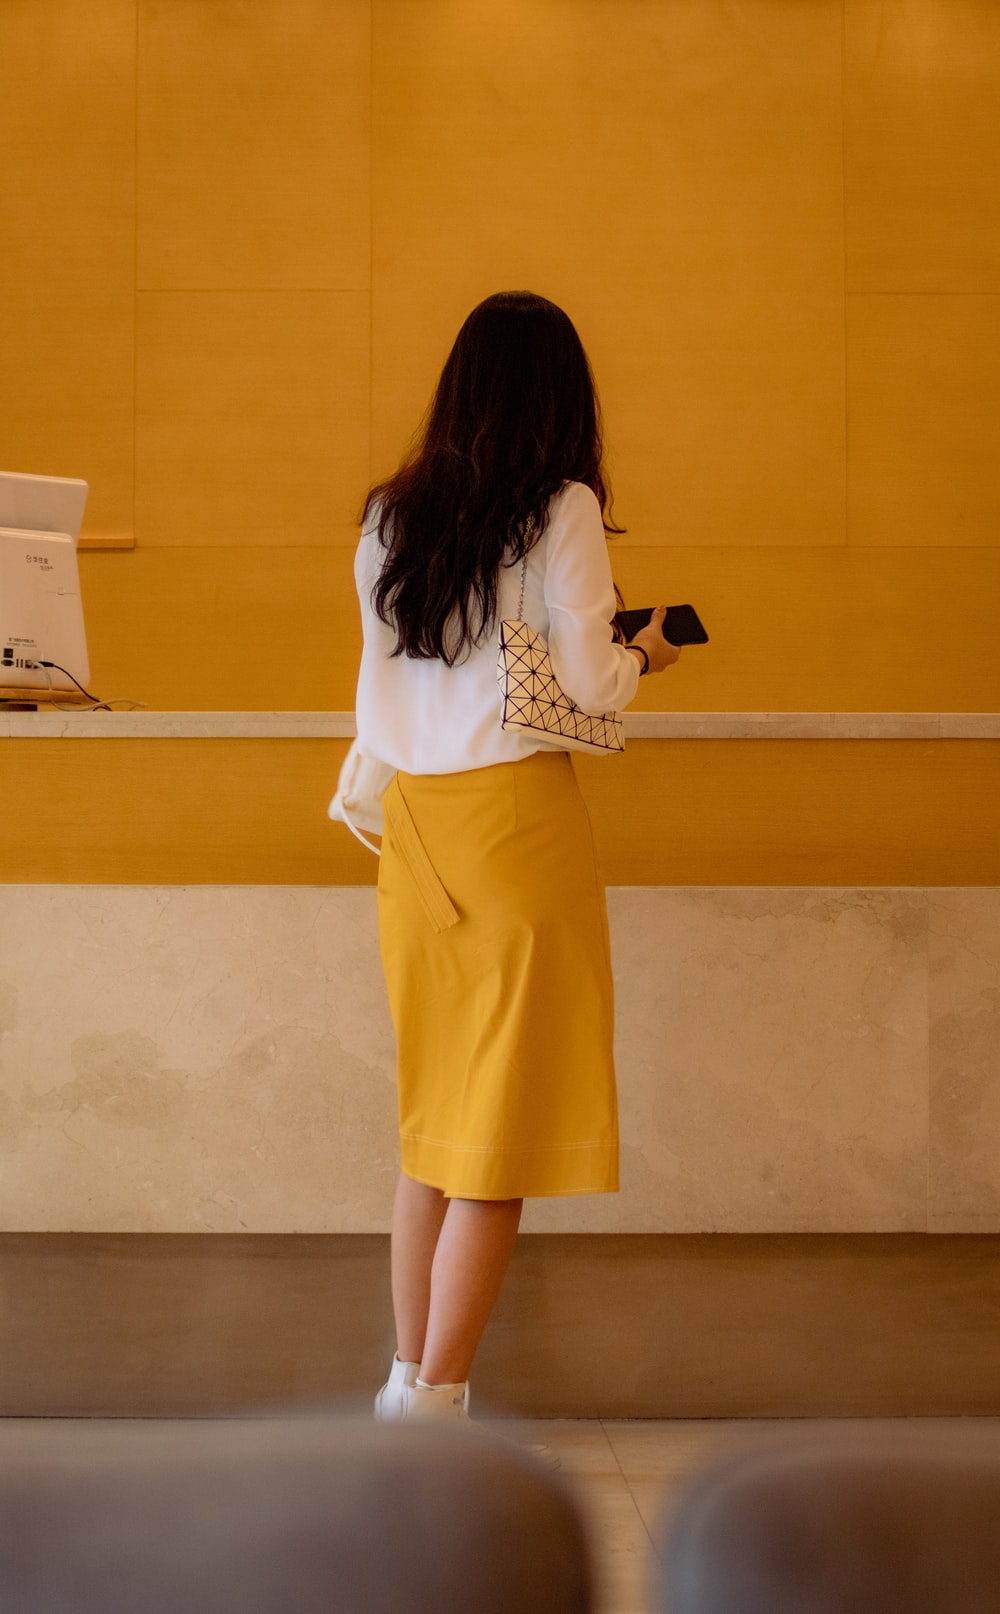 woman wearing white long-sleeved shirt and yellow skirt